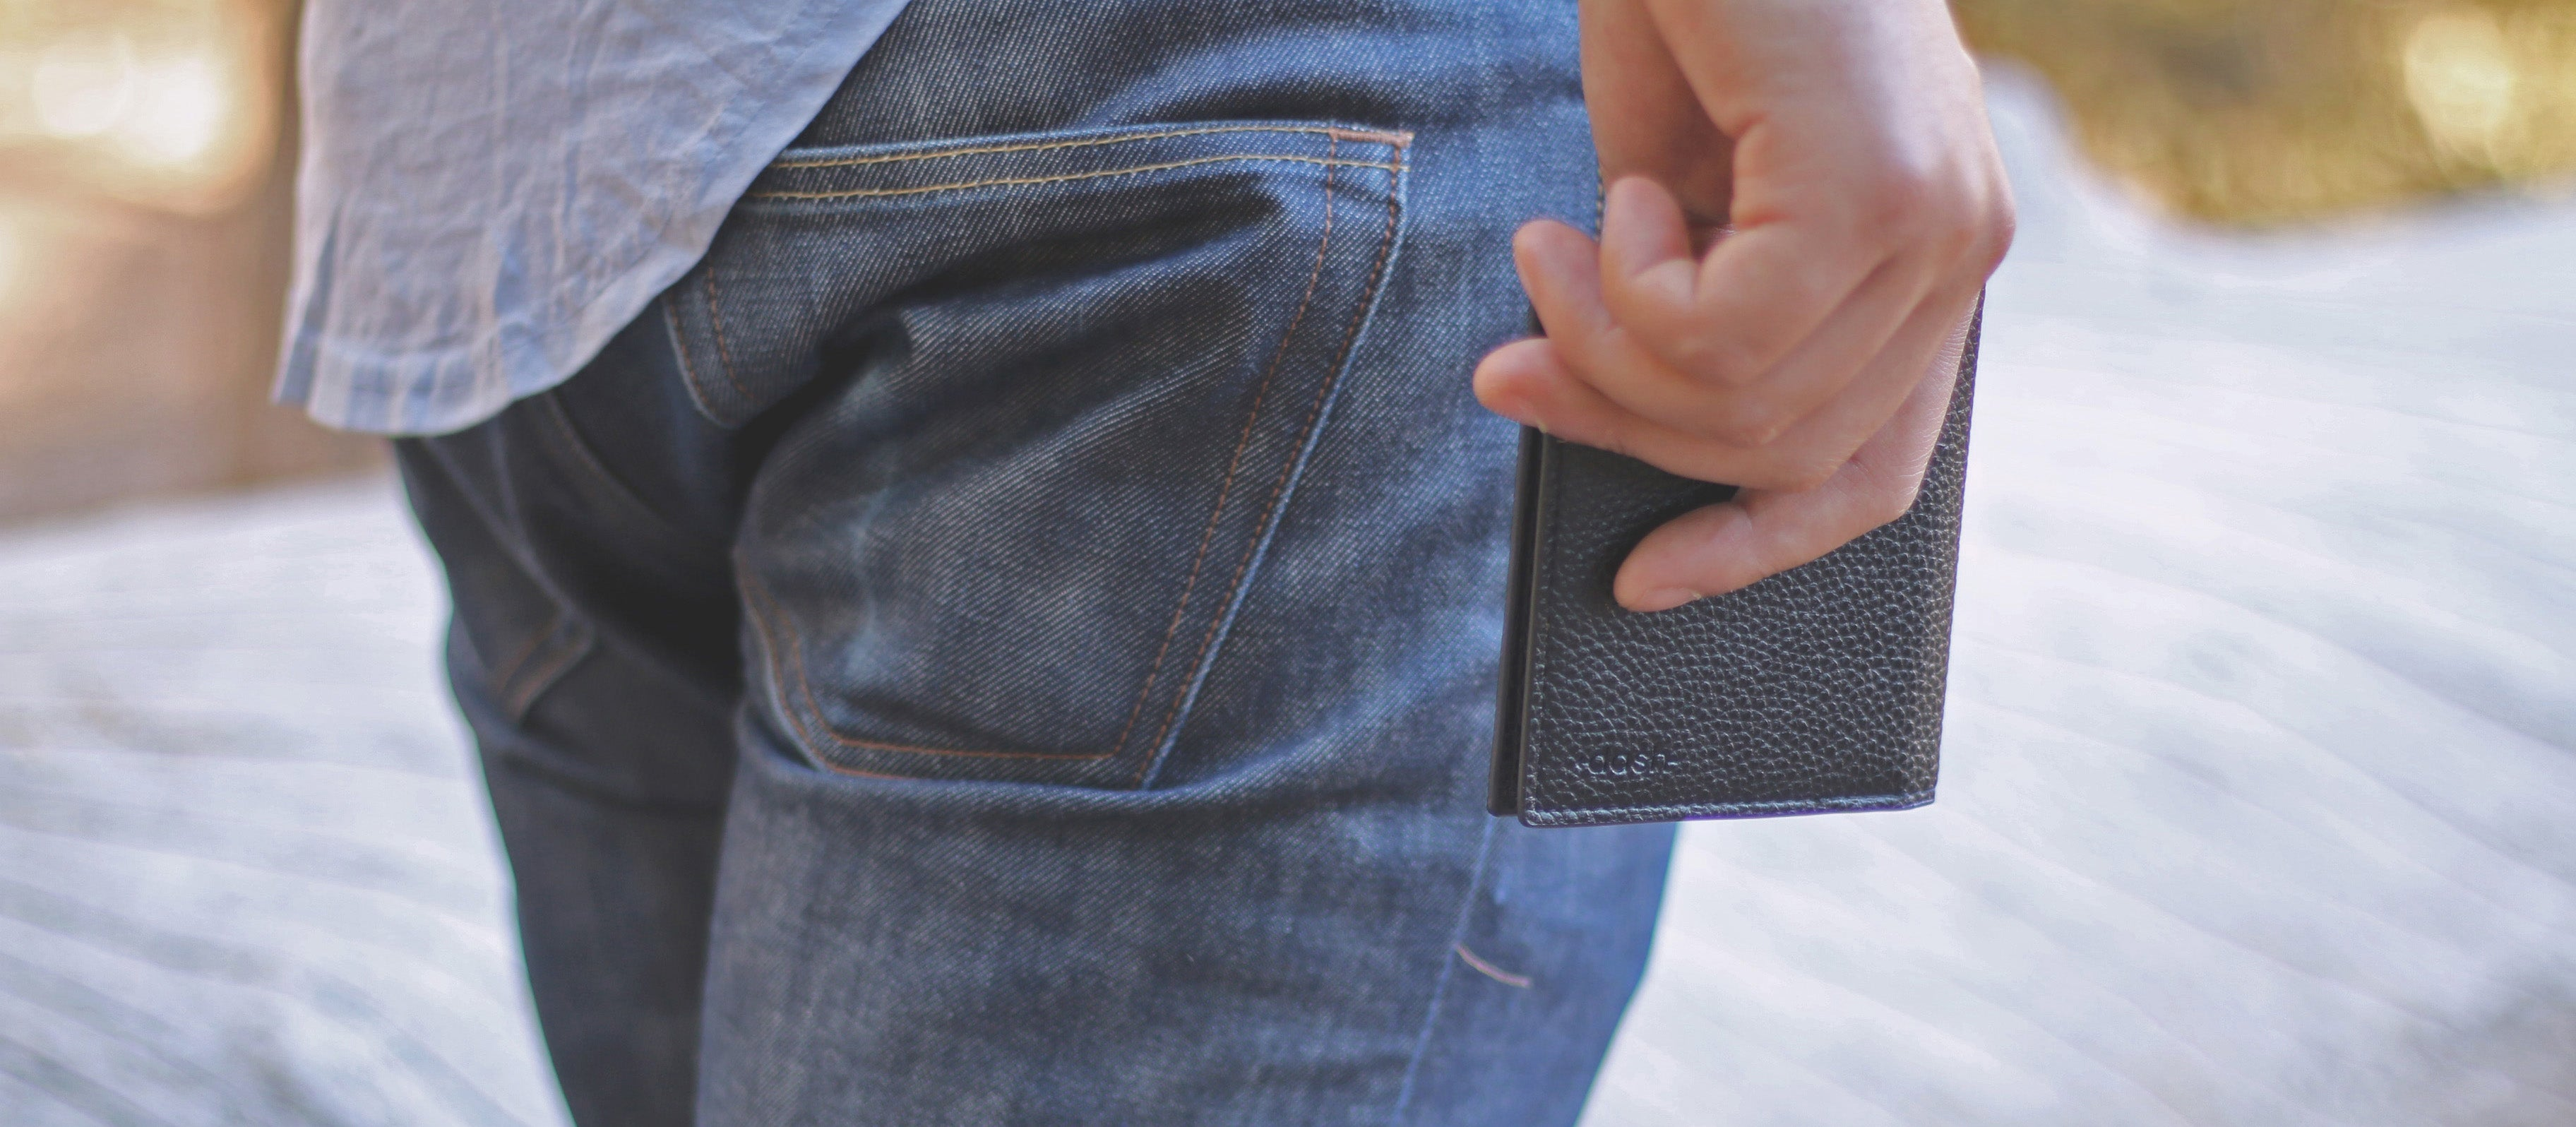 access Slim front pocket wallets for sale